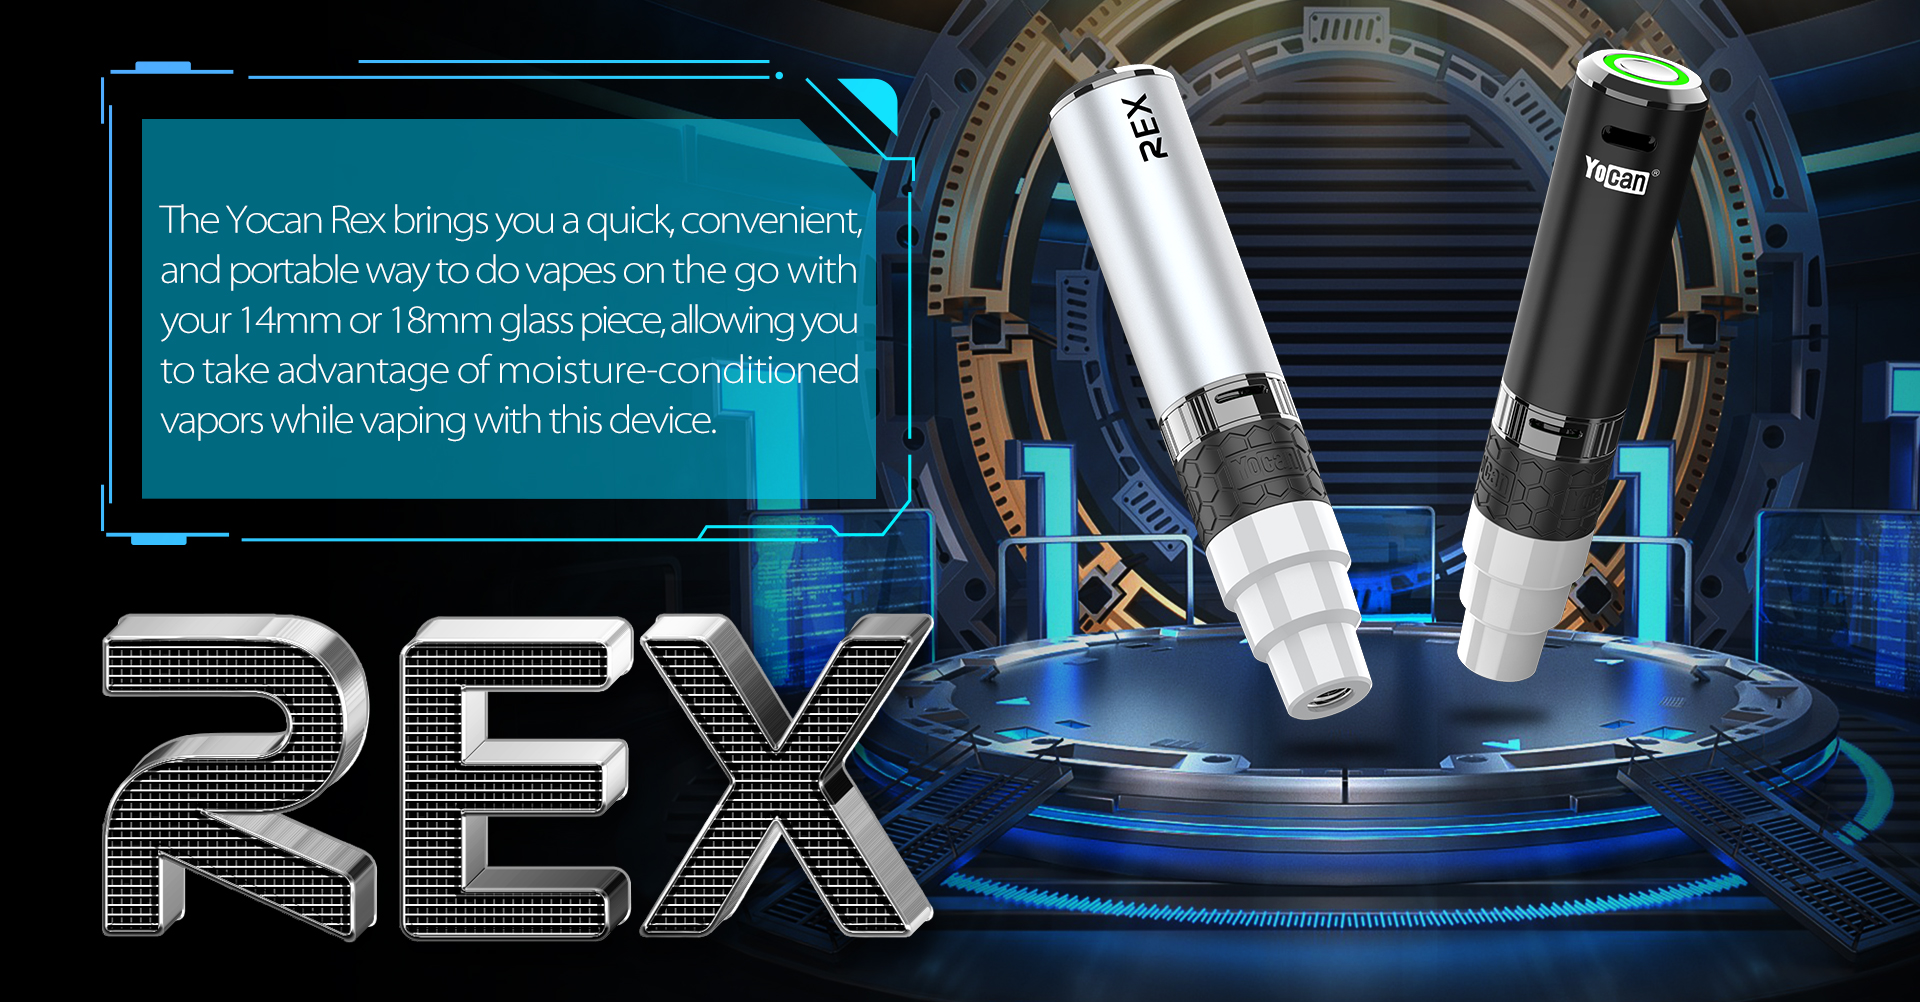 The Yocan Rex brings you a quick, convenient, and portable way to do vapes on the go